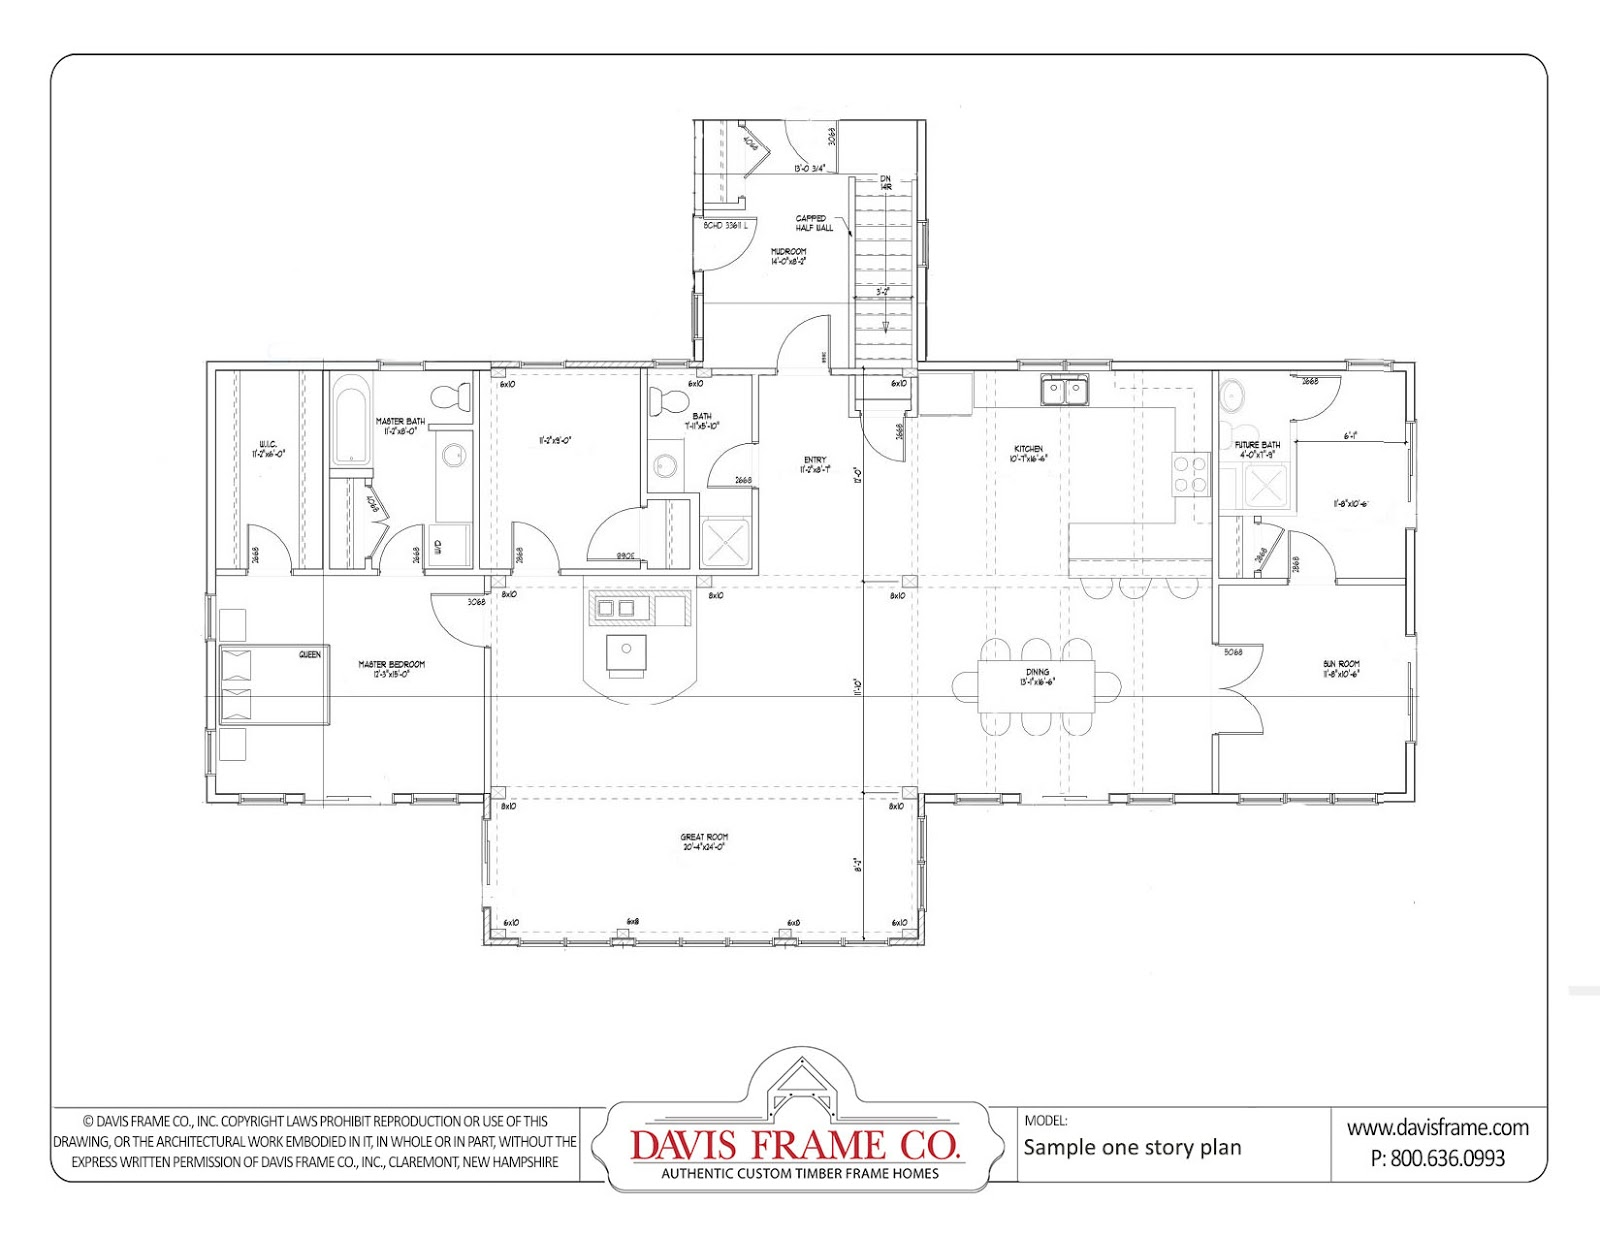 2 story timber frame house floor plans timber frame for Timber home floor plans